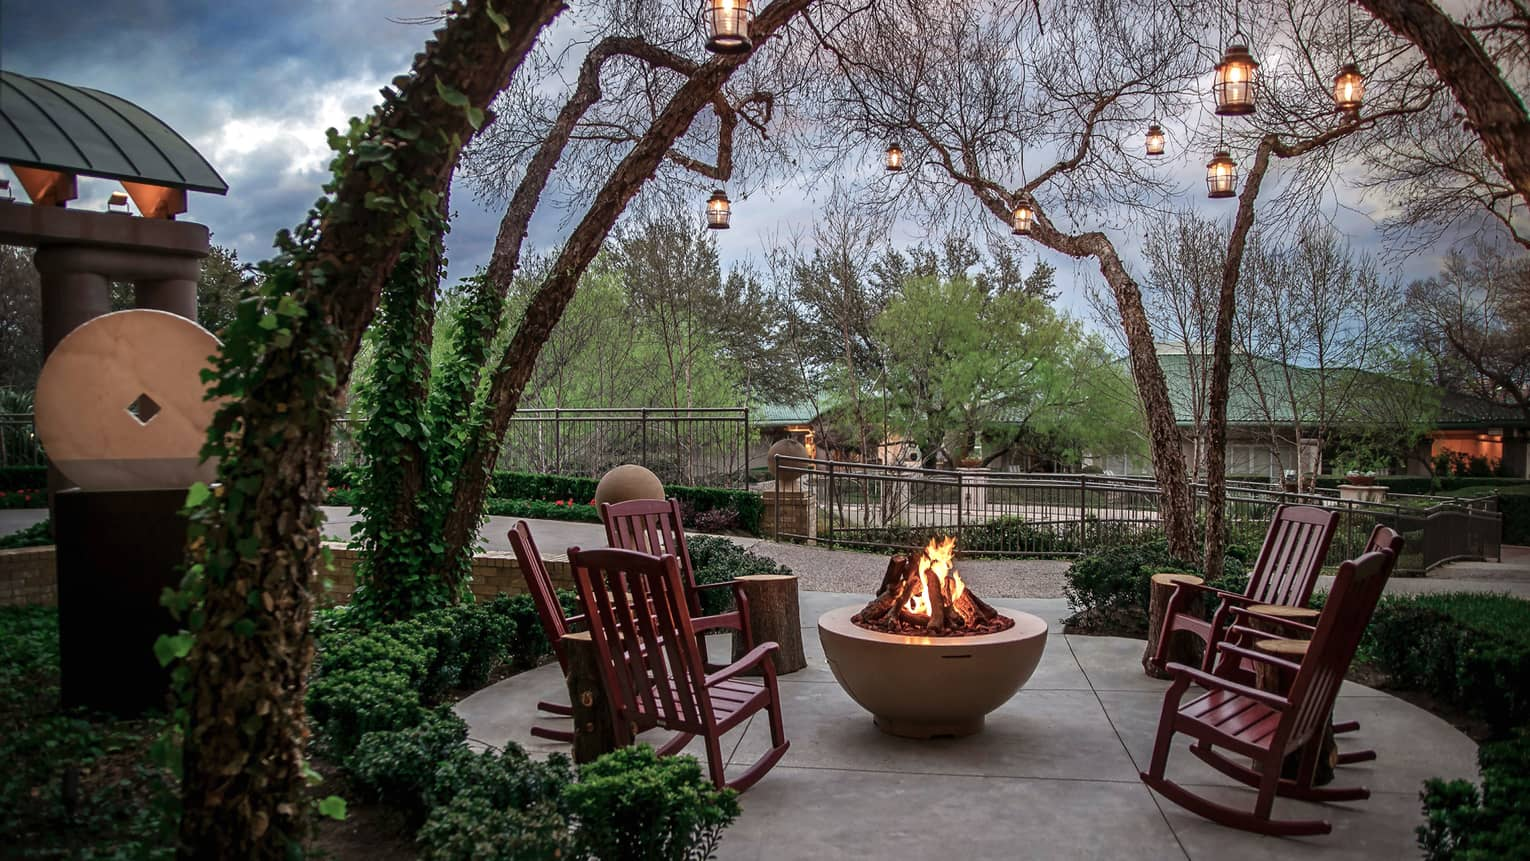 Wood rocking chairs around round outdoor fire pit under arched branches on Law restaurant patio